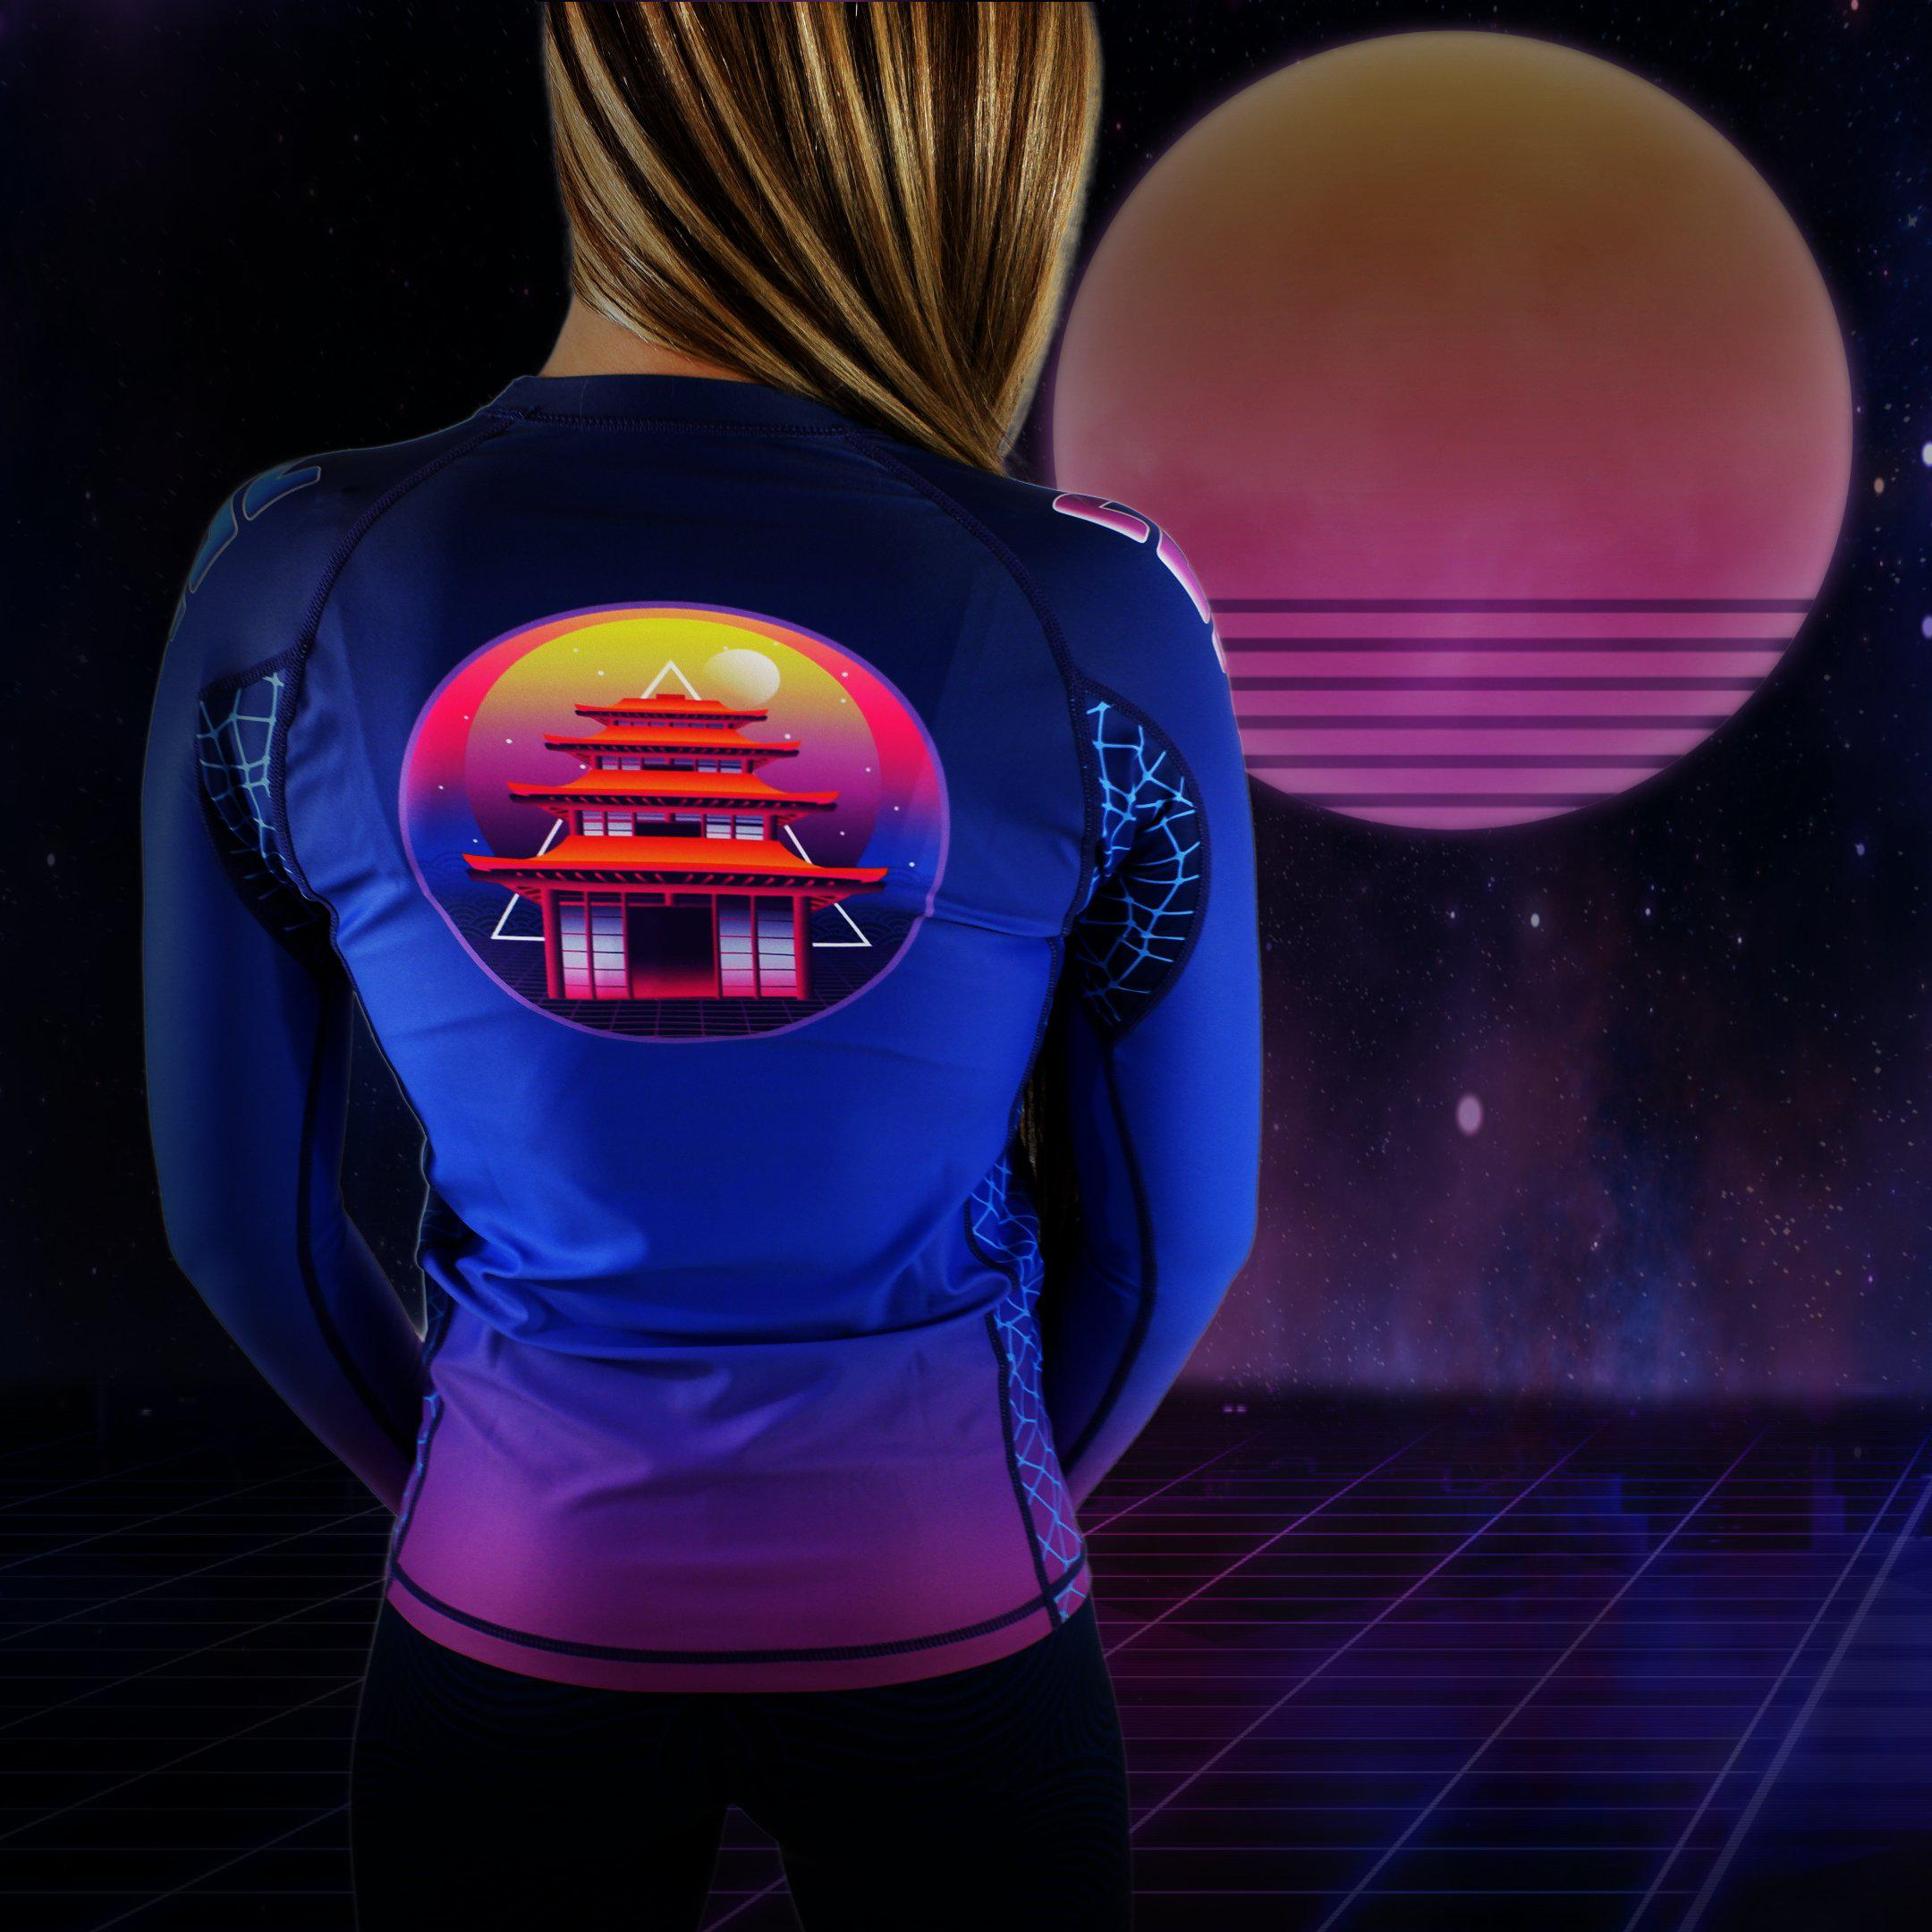 Zenko Fightwear Vaporwave Rashguard + The Great Wave Spats